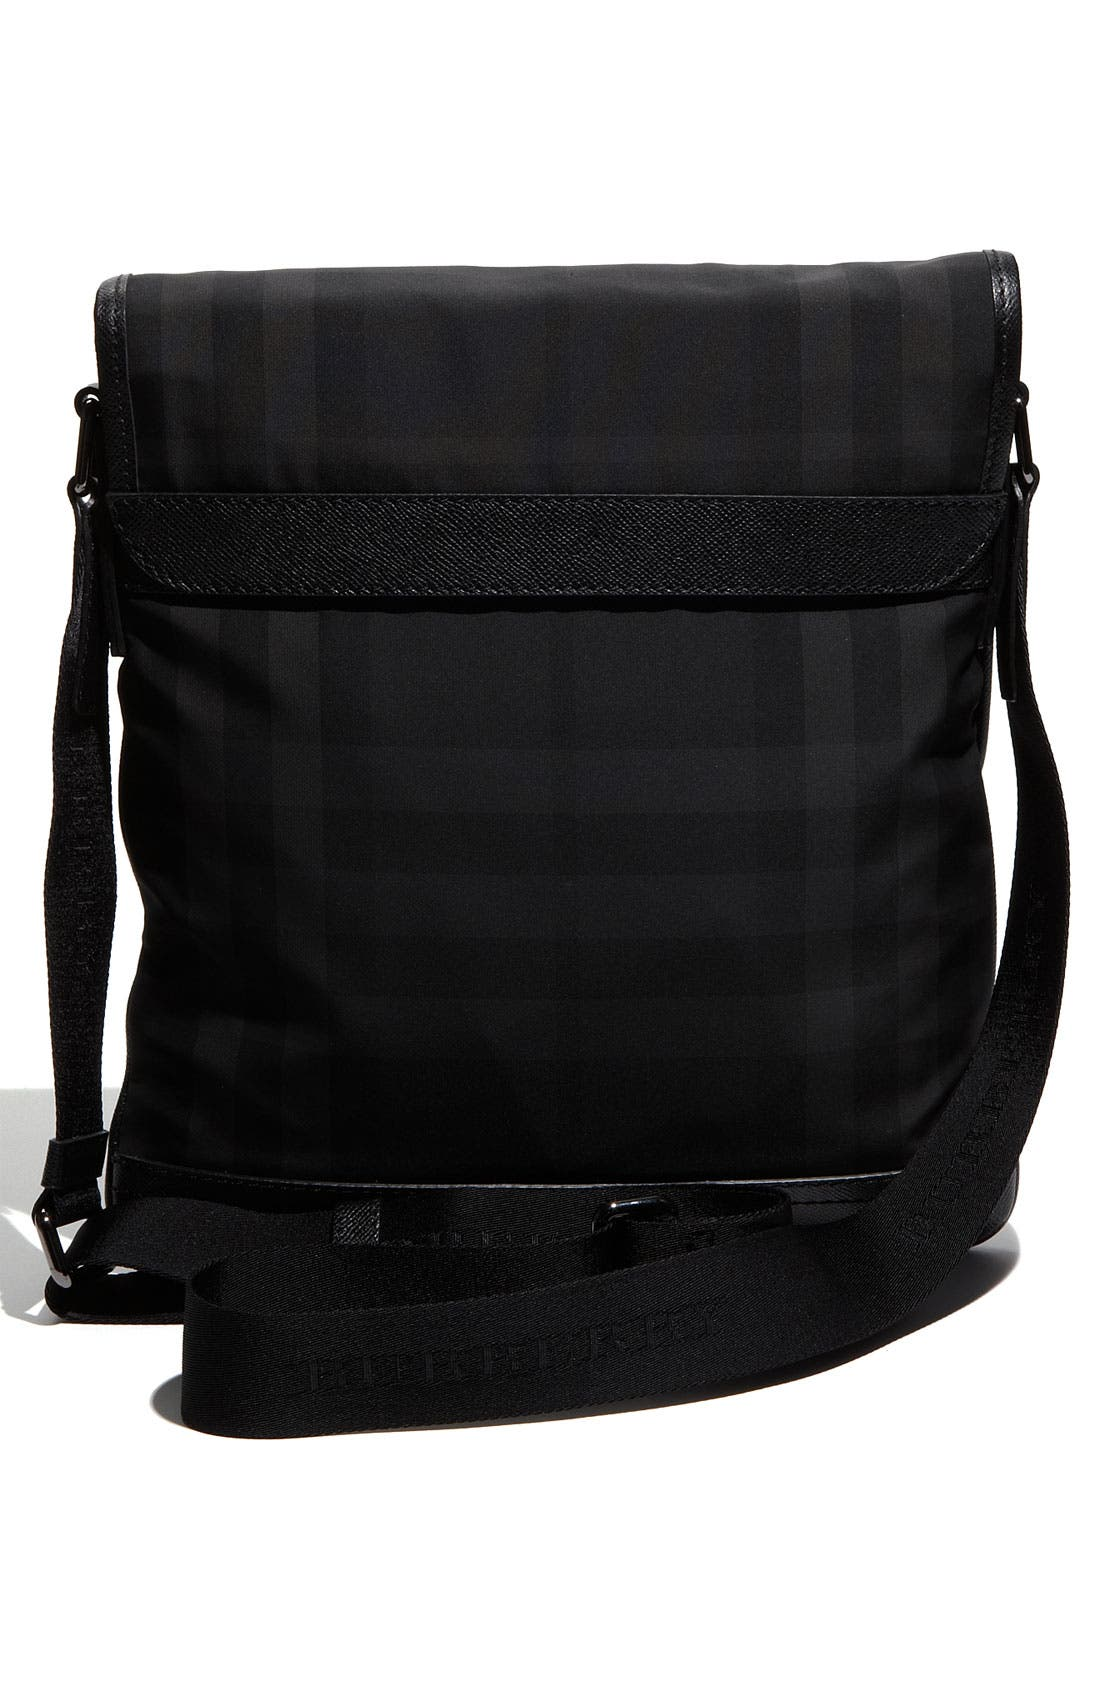 Alternate Image 2  - Burberry Check Print Crossbody Bag